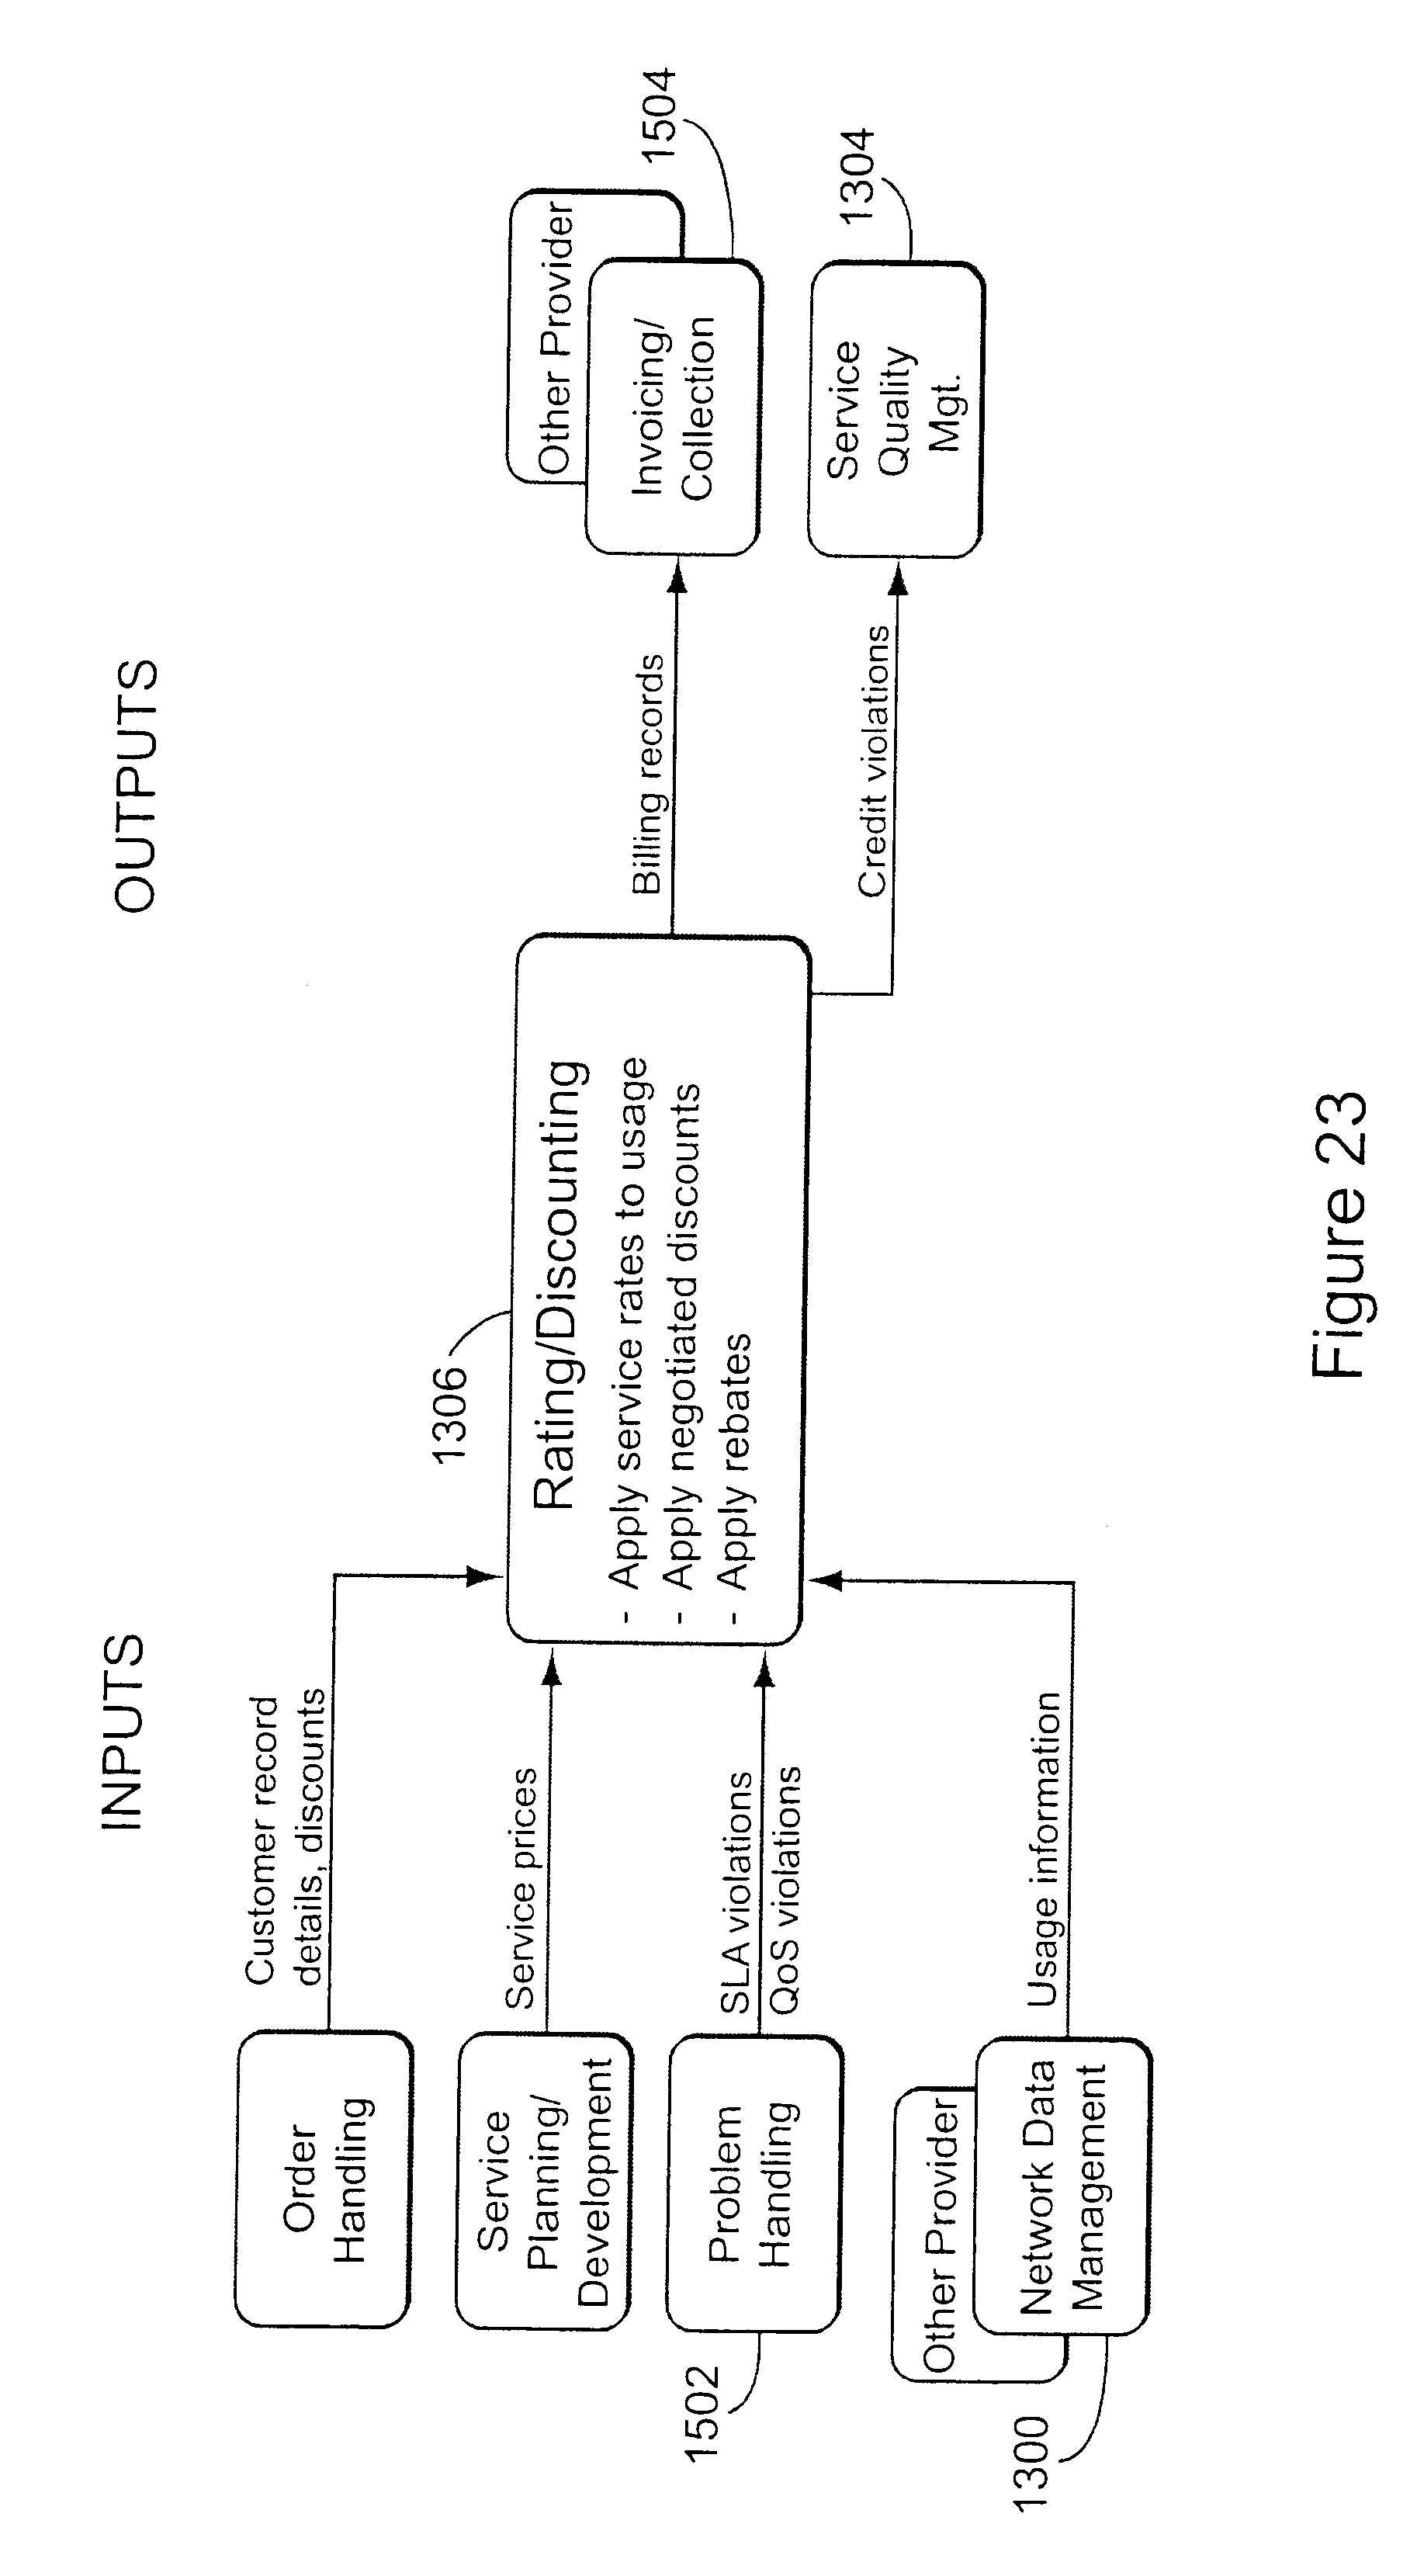 Patent Us 6606744 B1 Besides Direct Access Work Diagram On Network With Intranet Images